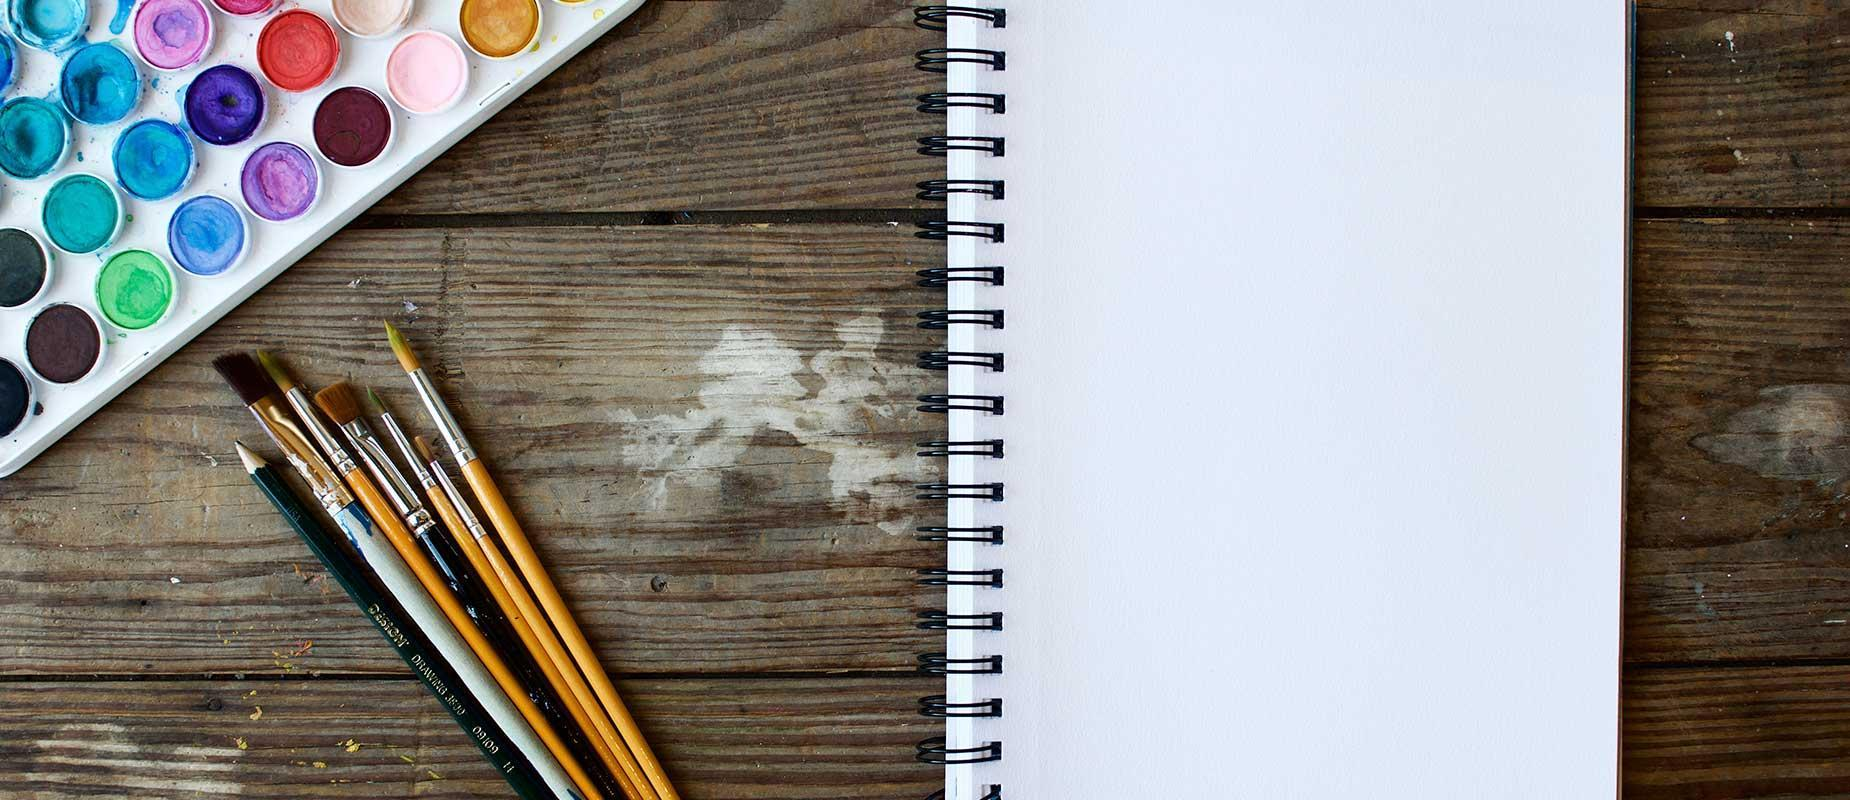 Notebook and watercolor supplies on a table